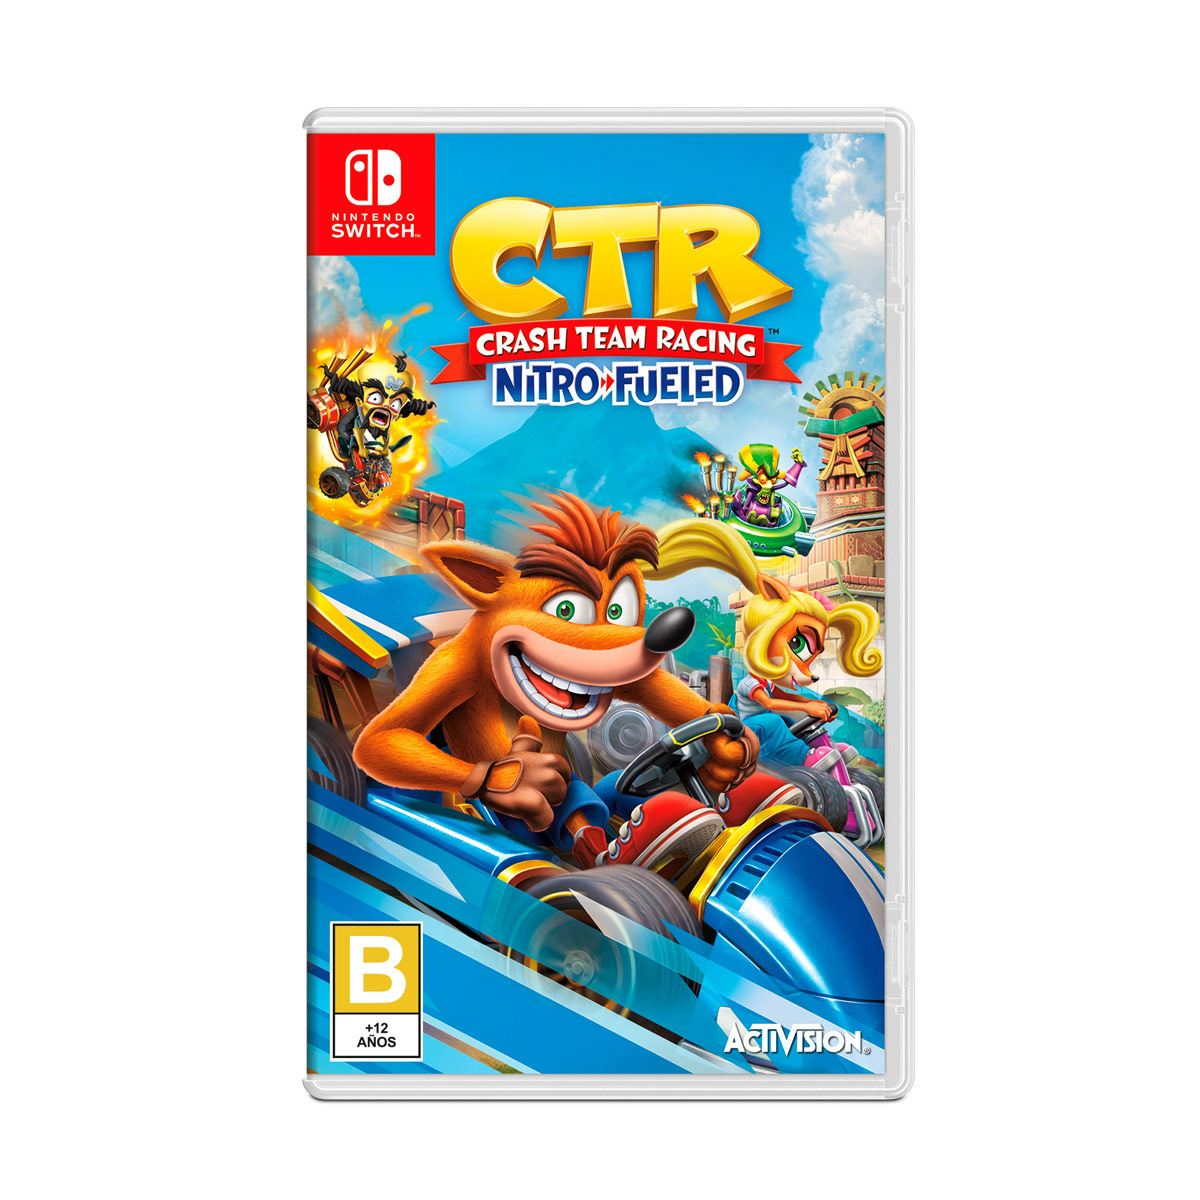 NSW Crash Team Racing Nitro Fueled